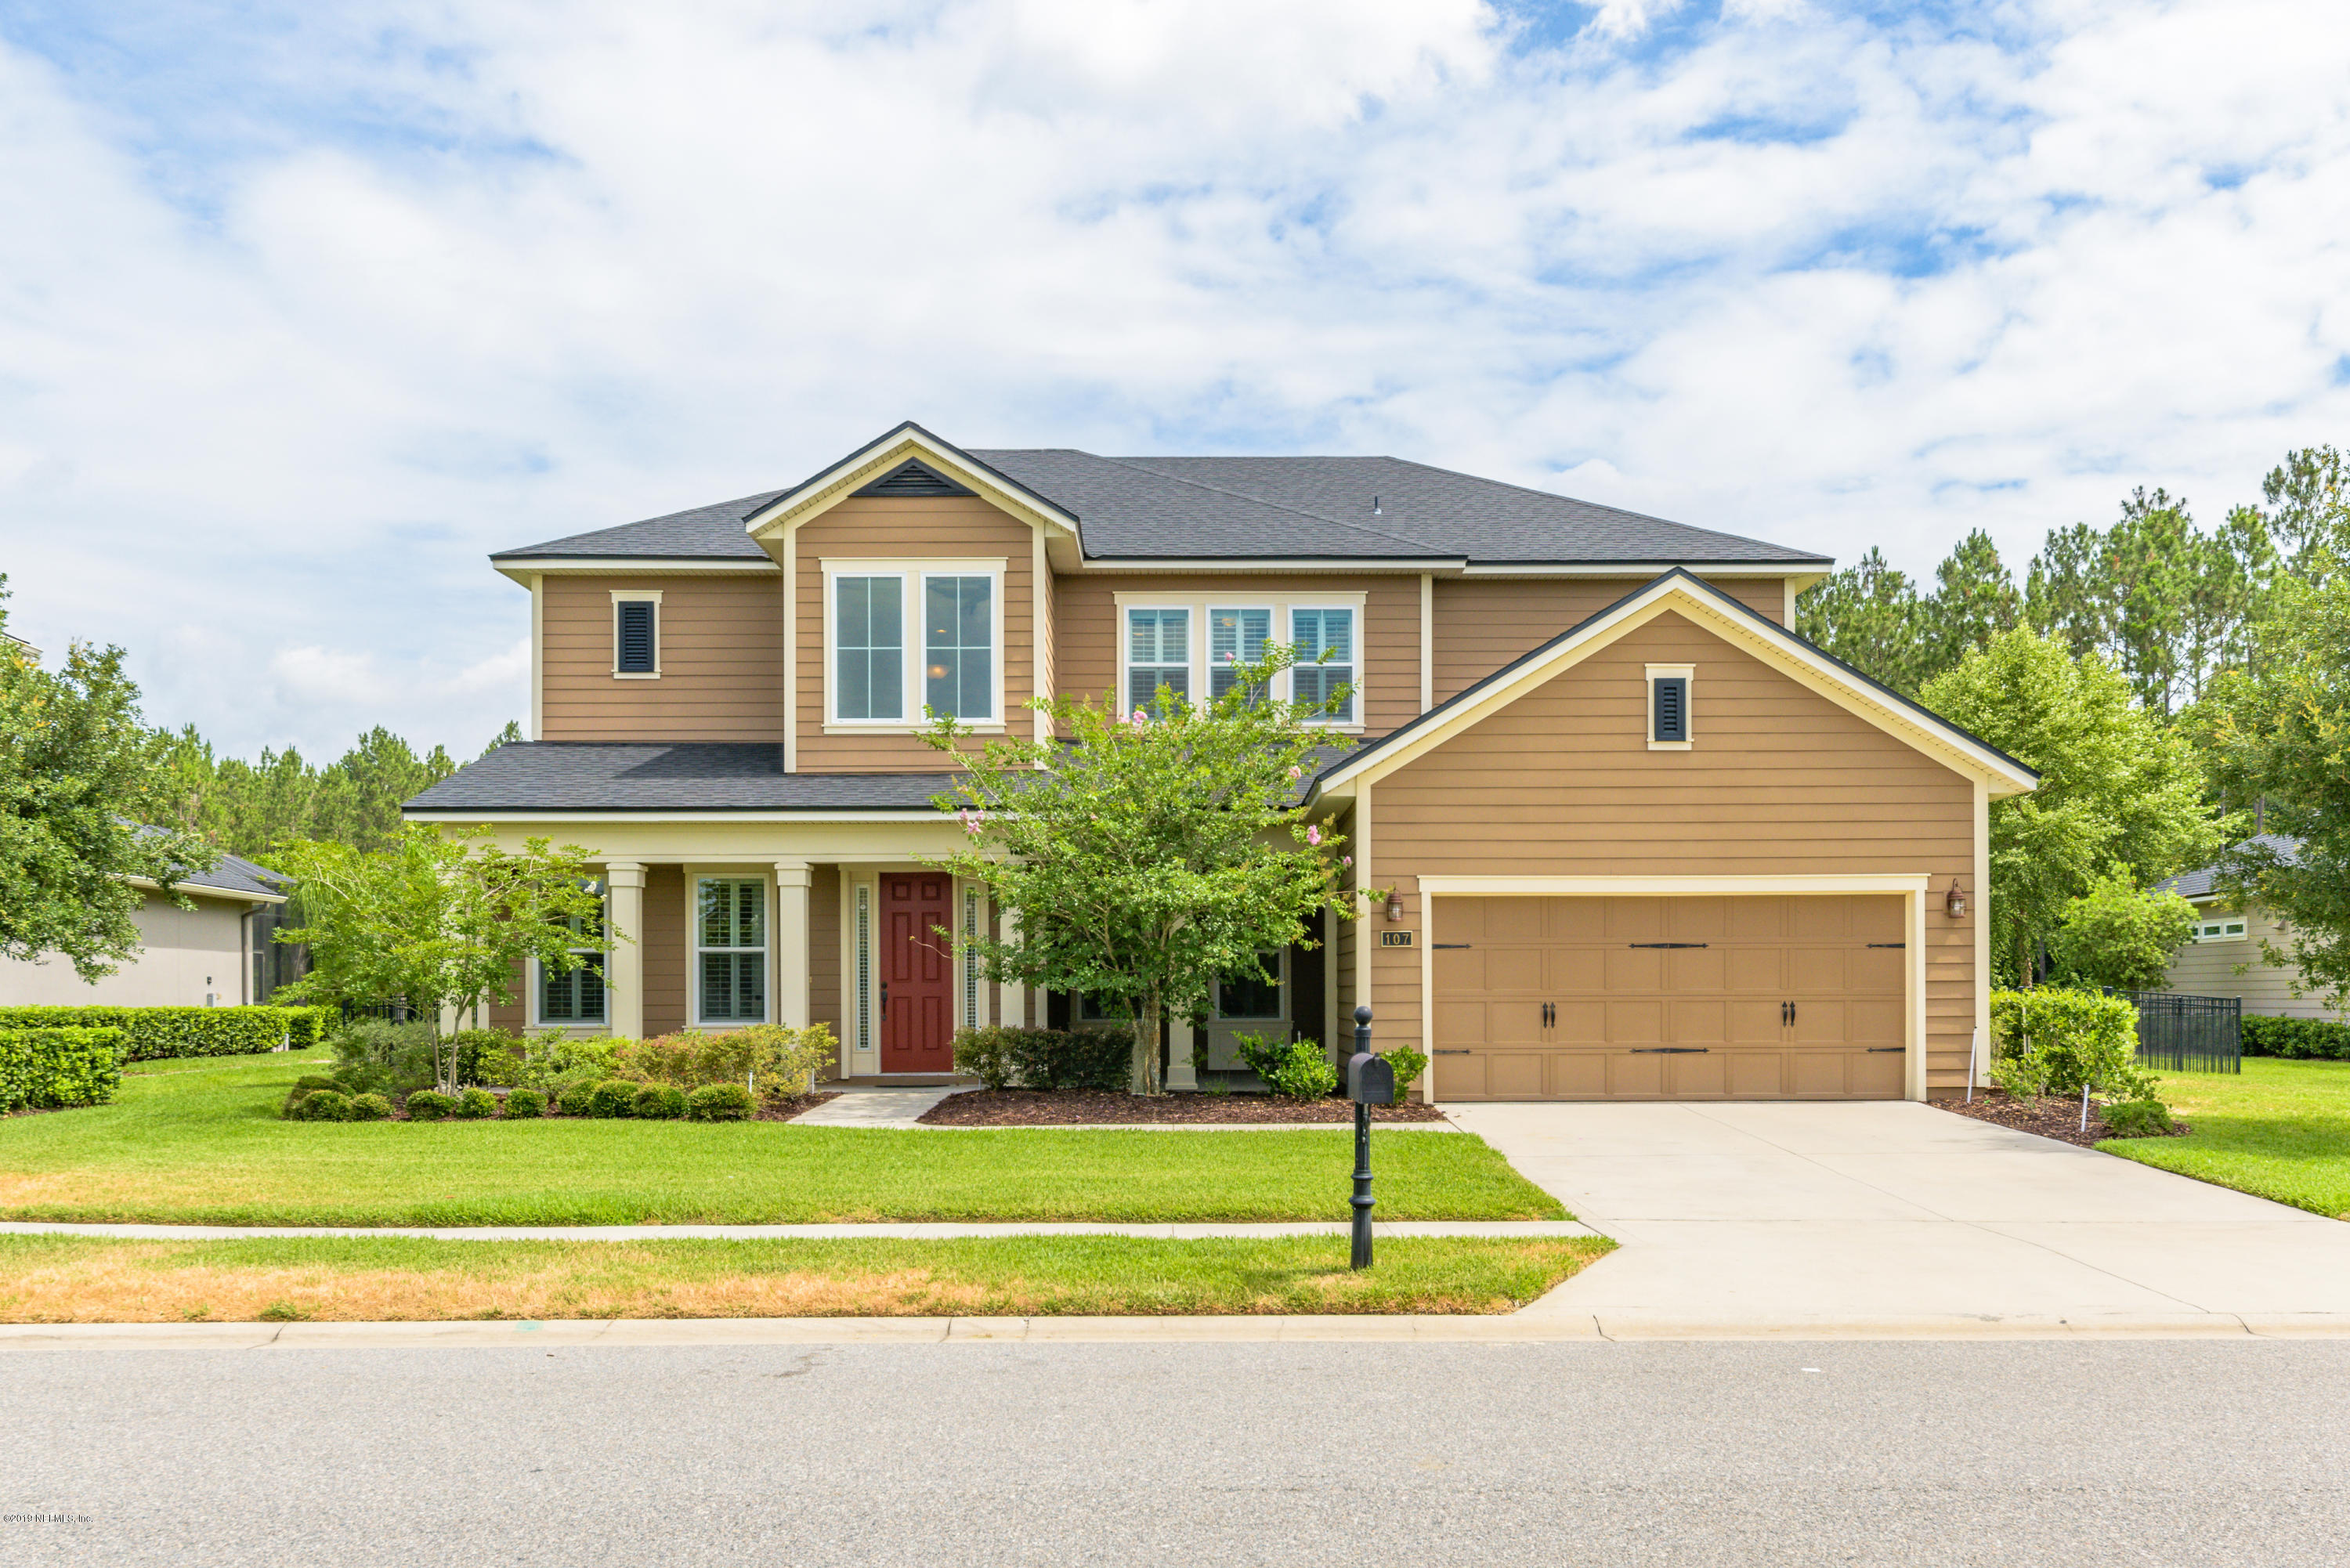 107 WELLWOOD, ST JOHNS, FLORIDA 32259, 5 Bedrooms Bedrooms, ,3 BathroomsBathrooms,Residential - single family,For sale,WELLWOOD,999784